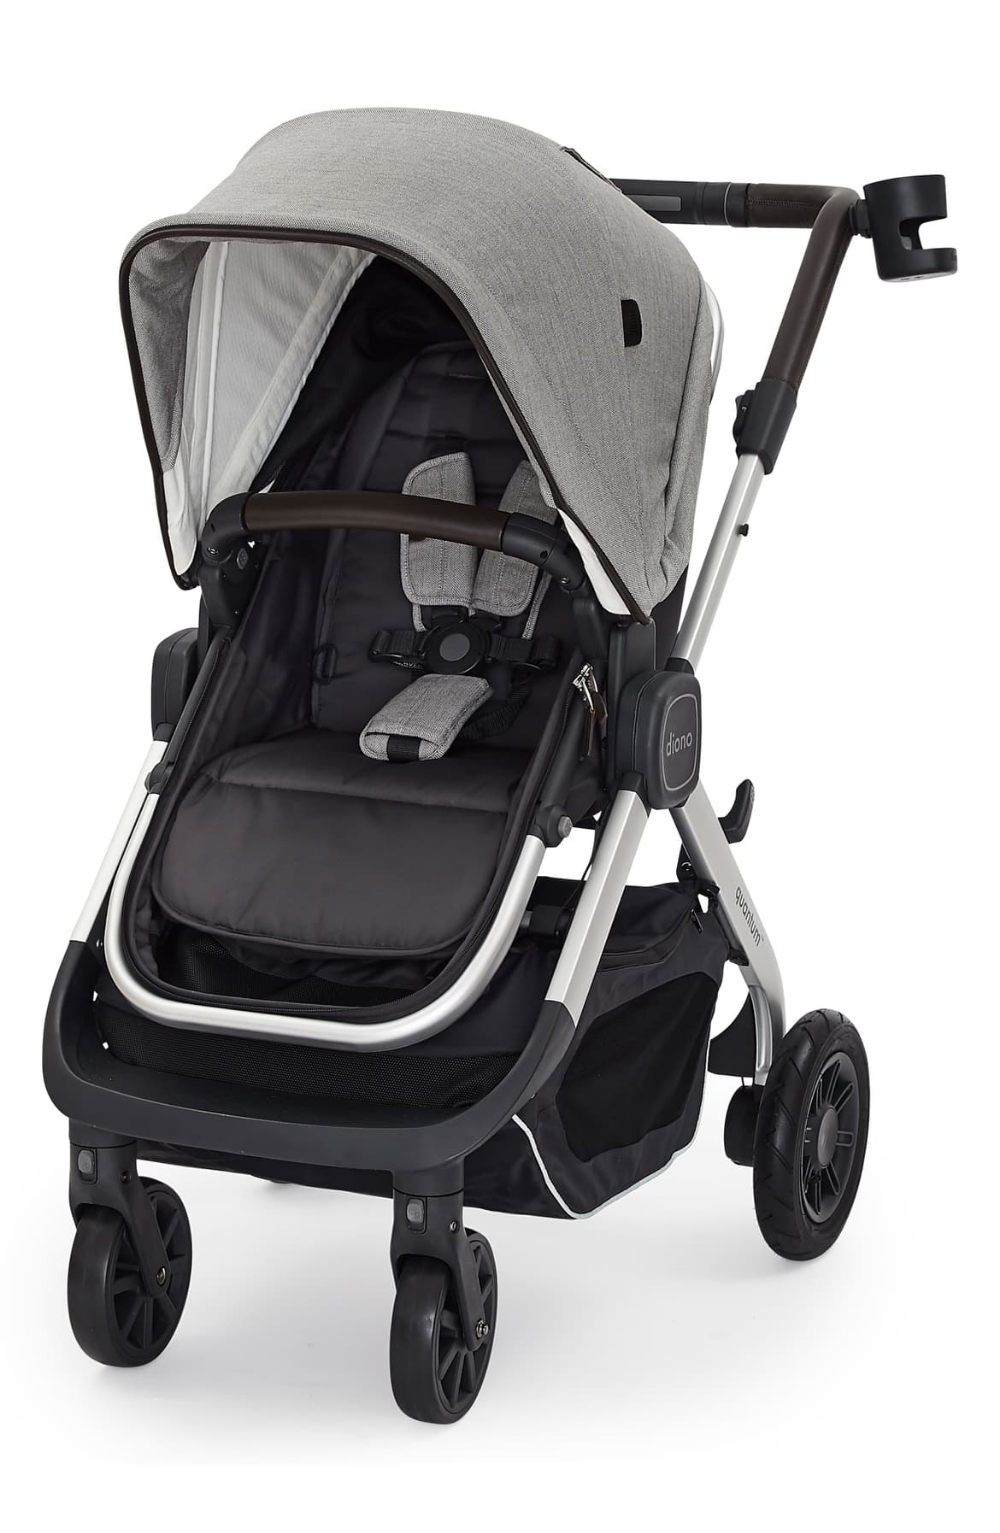 Diono Quantum Luxe Stroller Baby strollers, Car seats